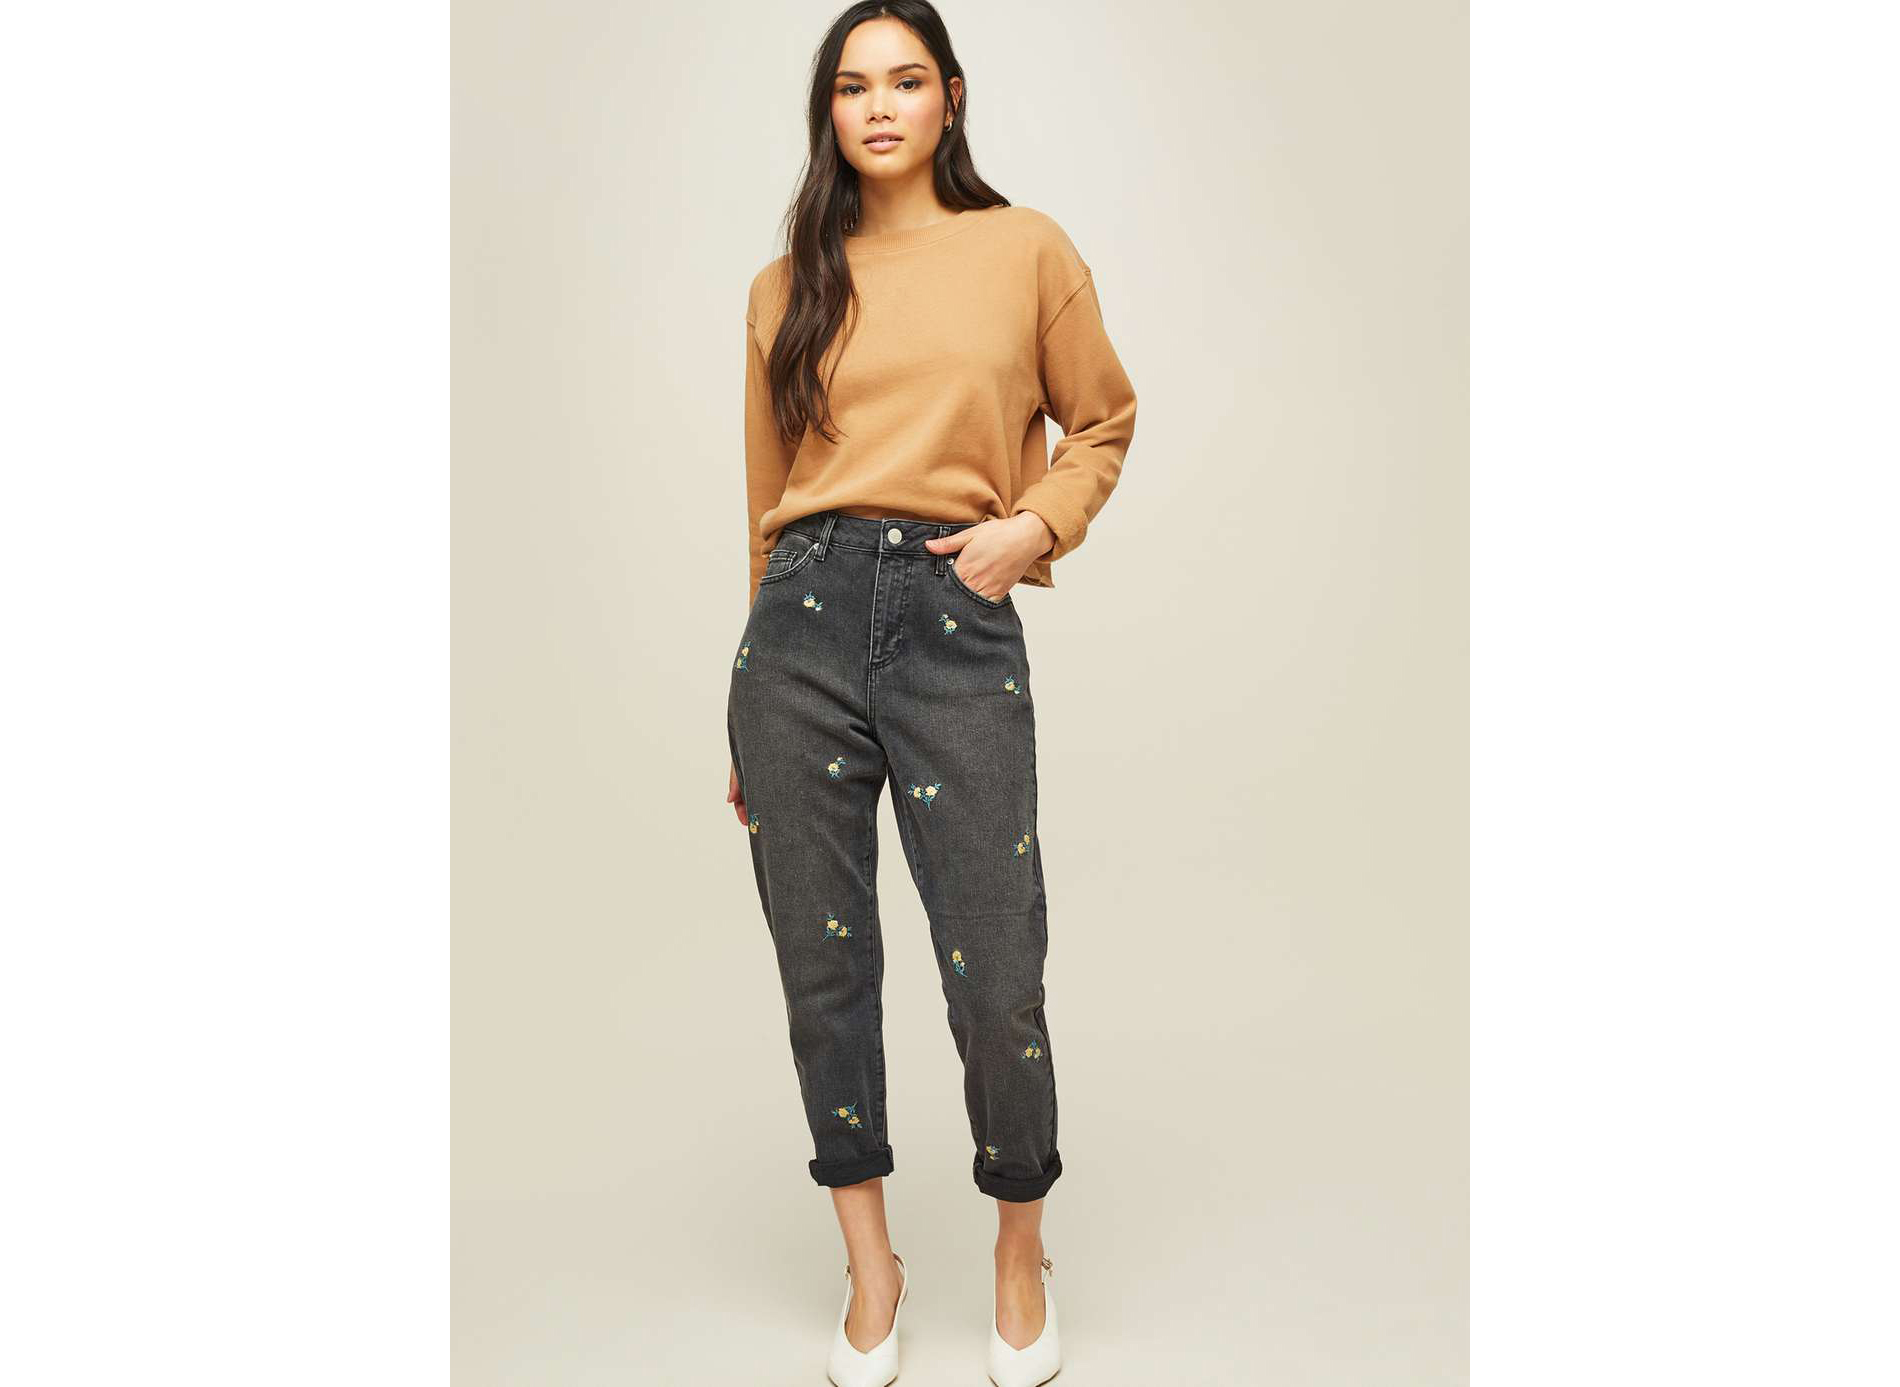 model wearing Miss Selfridge Camel Cropped Sweatshirt and Mom Black Ditsy Embroidered Jeans